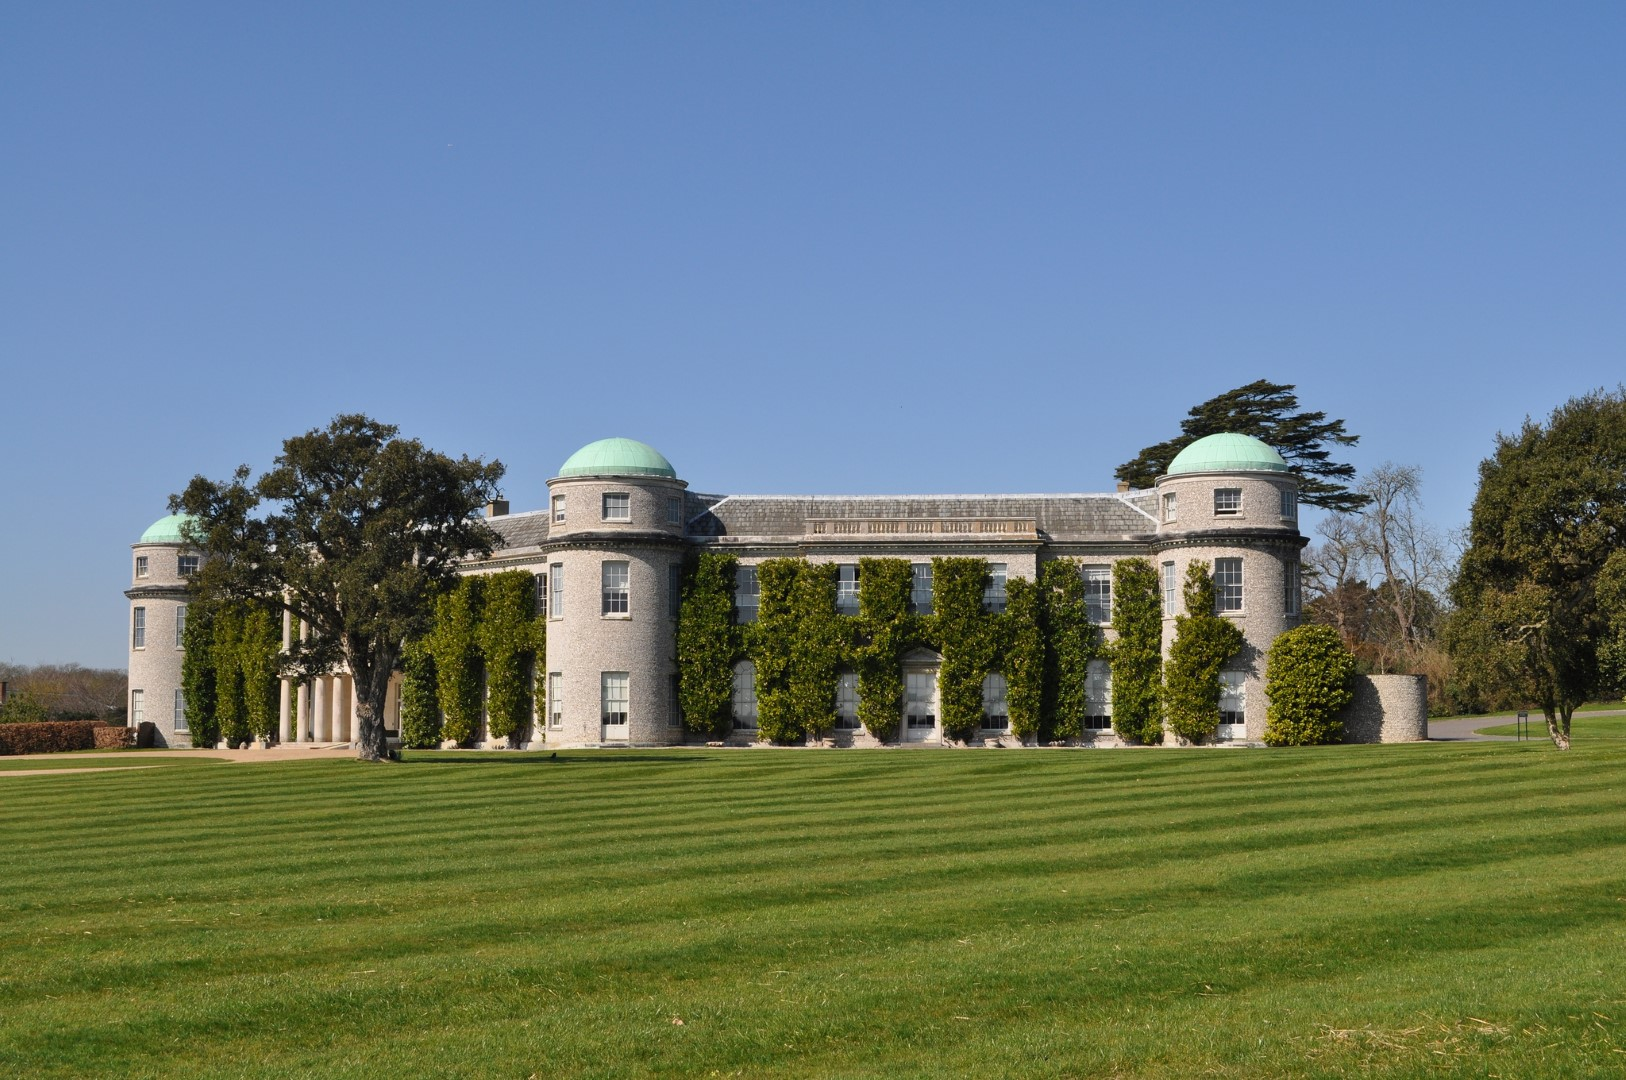 Goodwood House by Sue Lowry